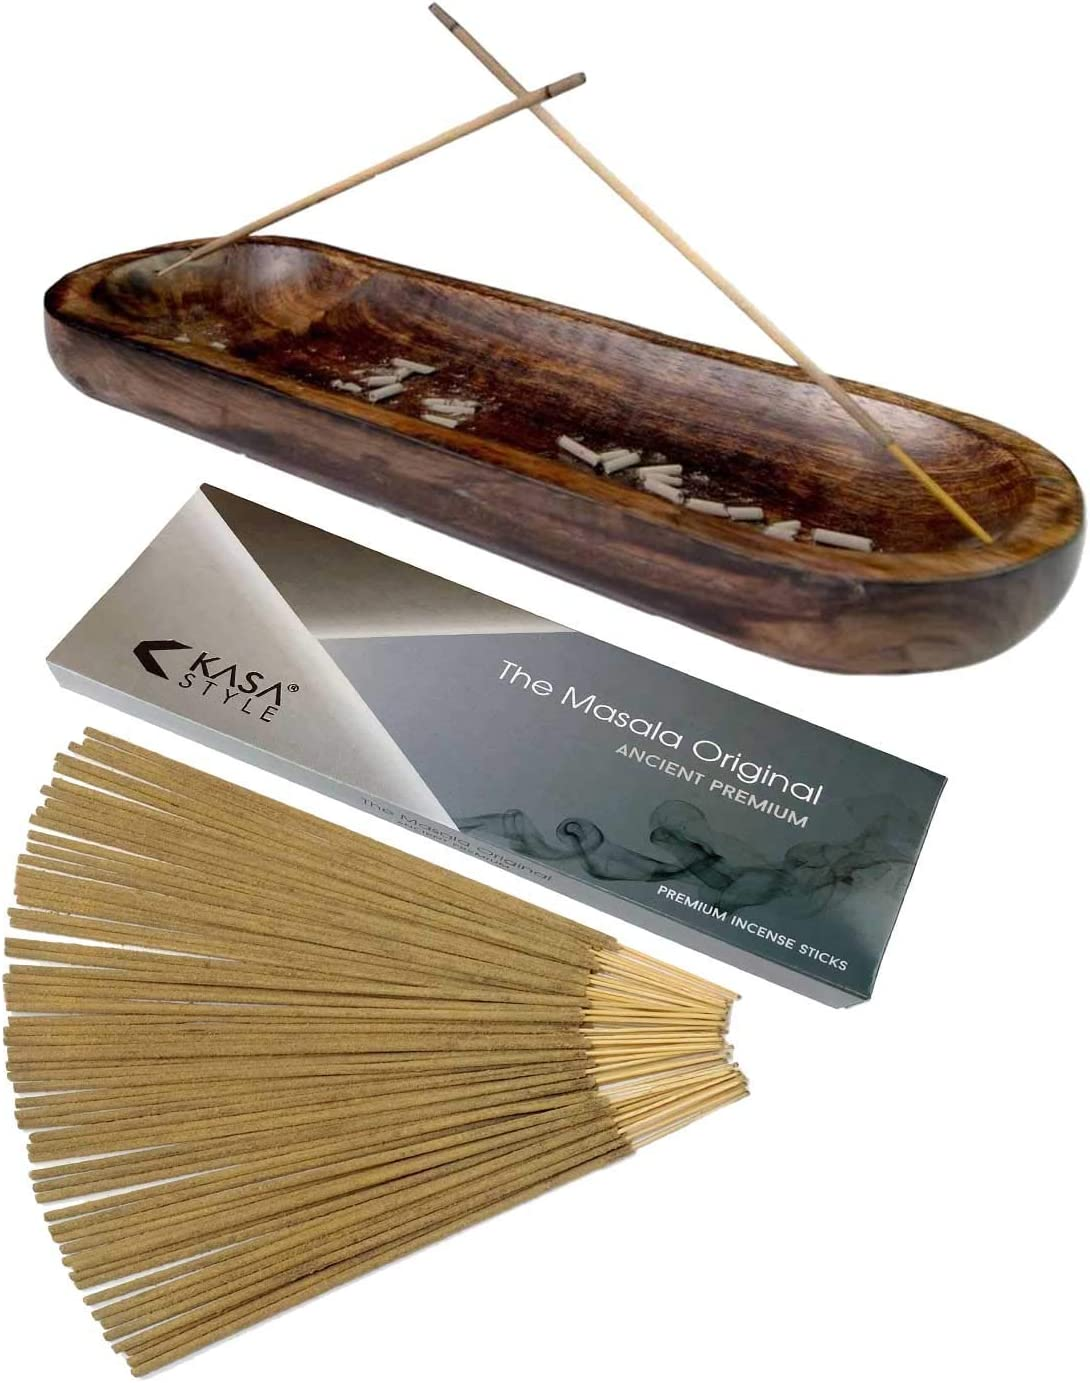 Kasa Style Double Incense Burner with 100gr Masala Premium Incen